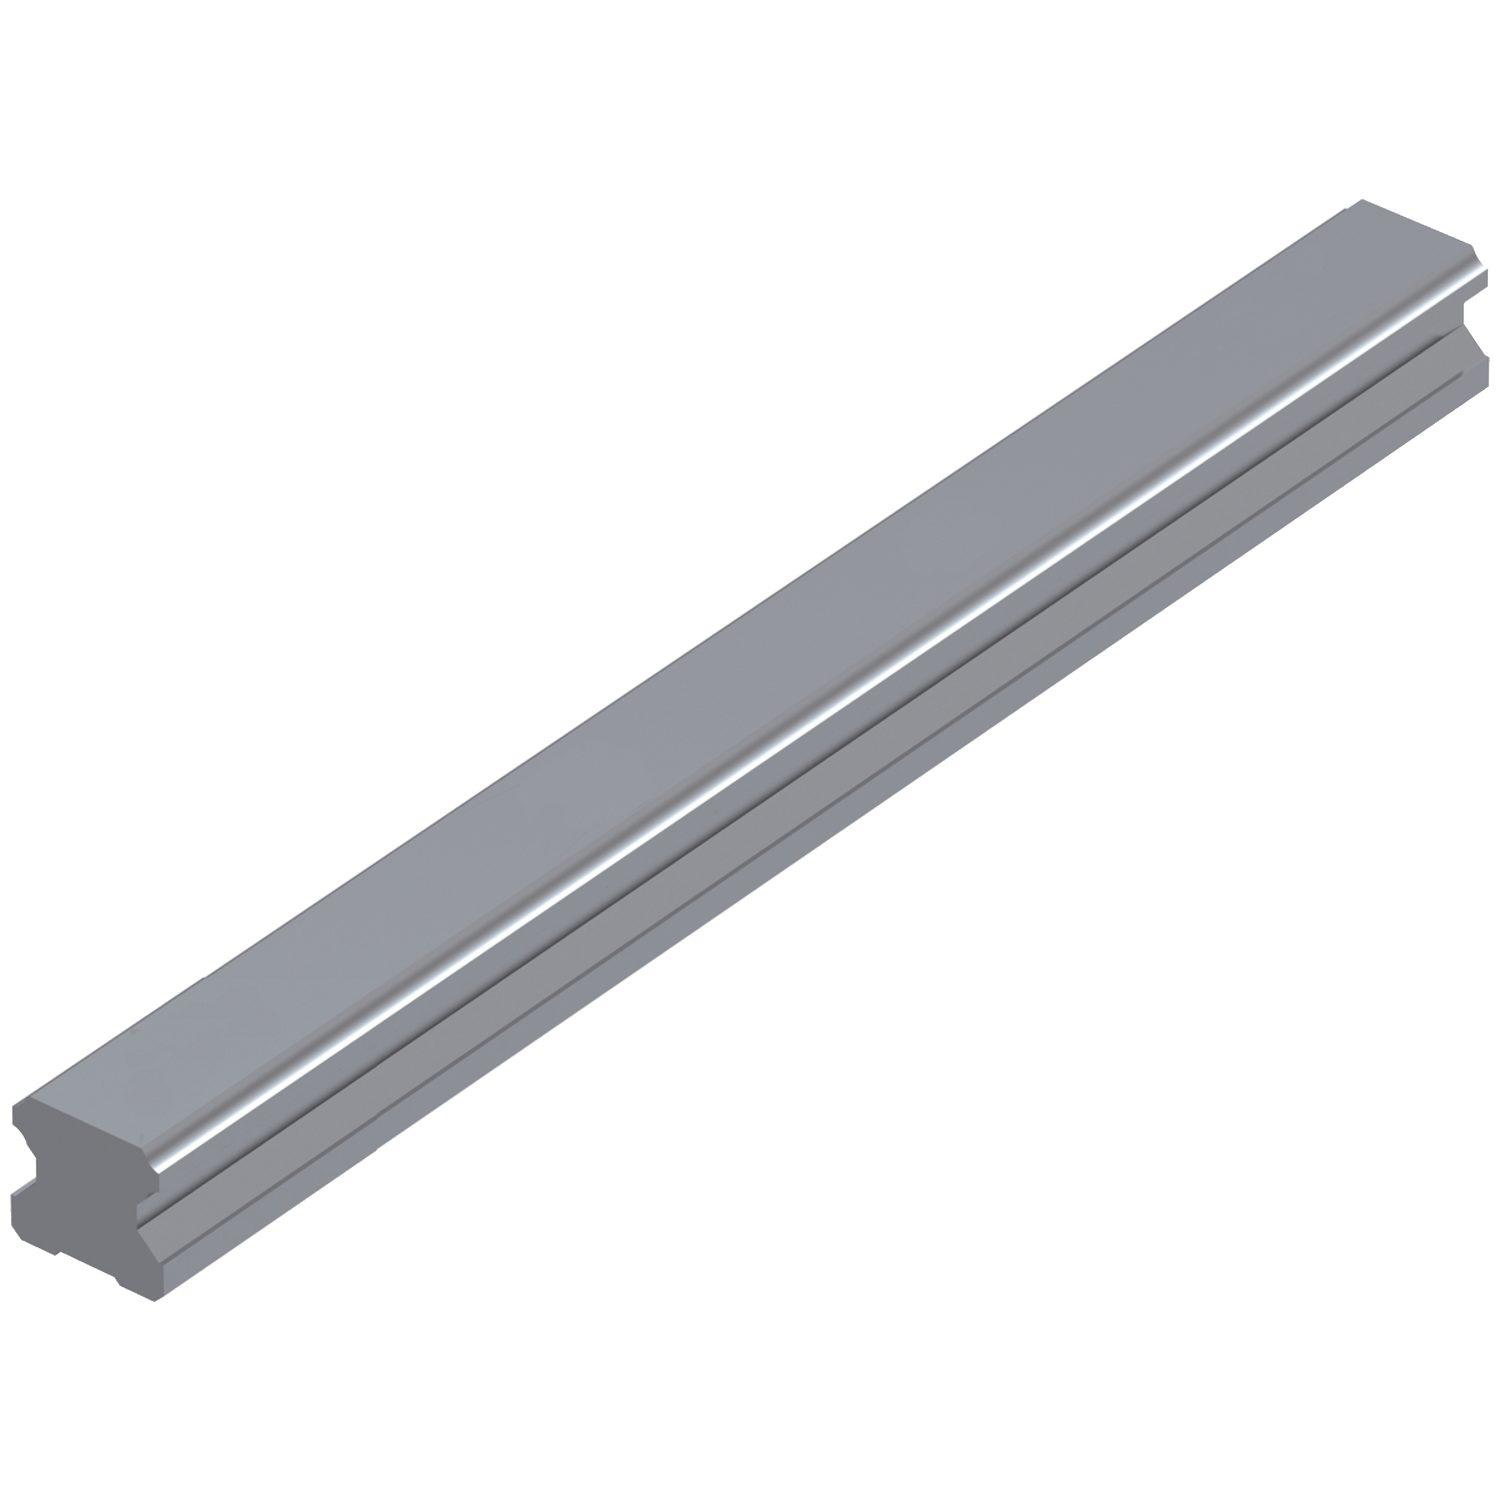 L1016.RF - 25mm Linear Guide Rail